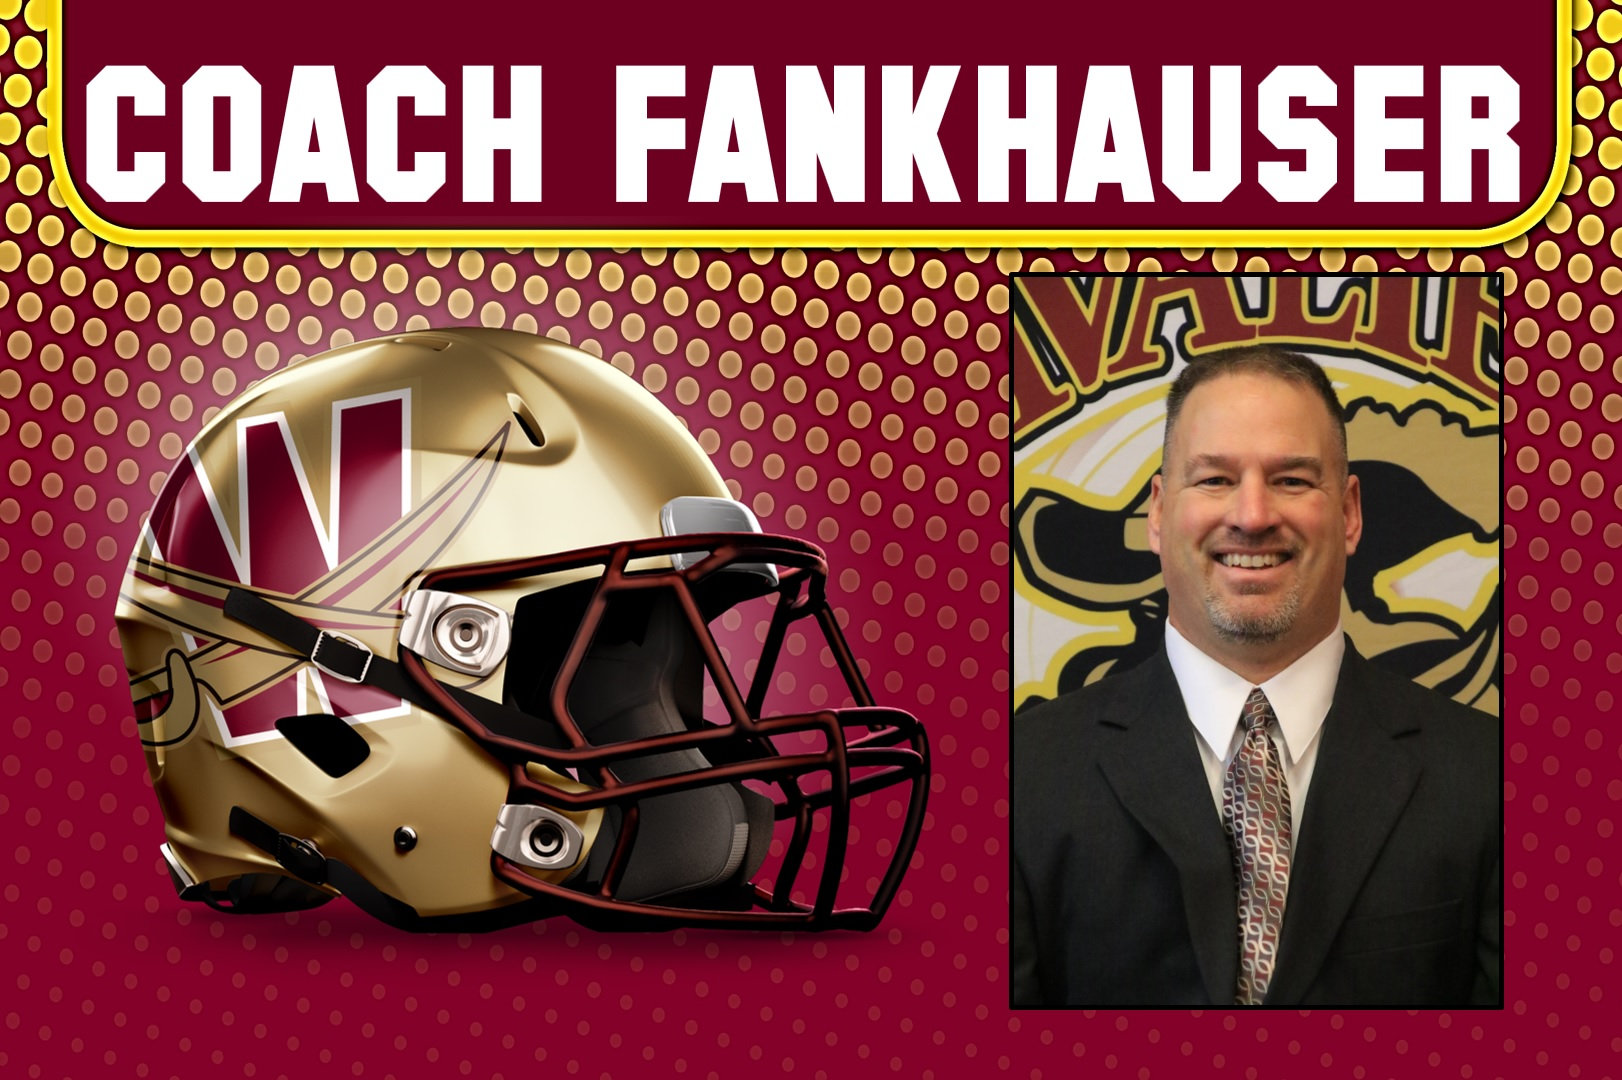 Walsh University Appoints John Fankhauser Cavalier Football Head Coach